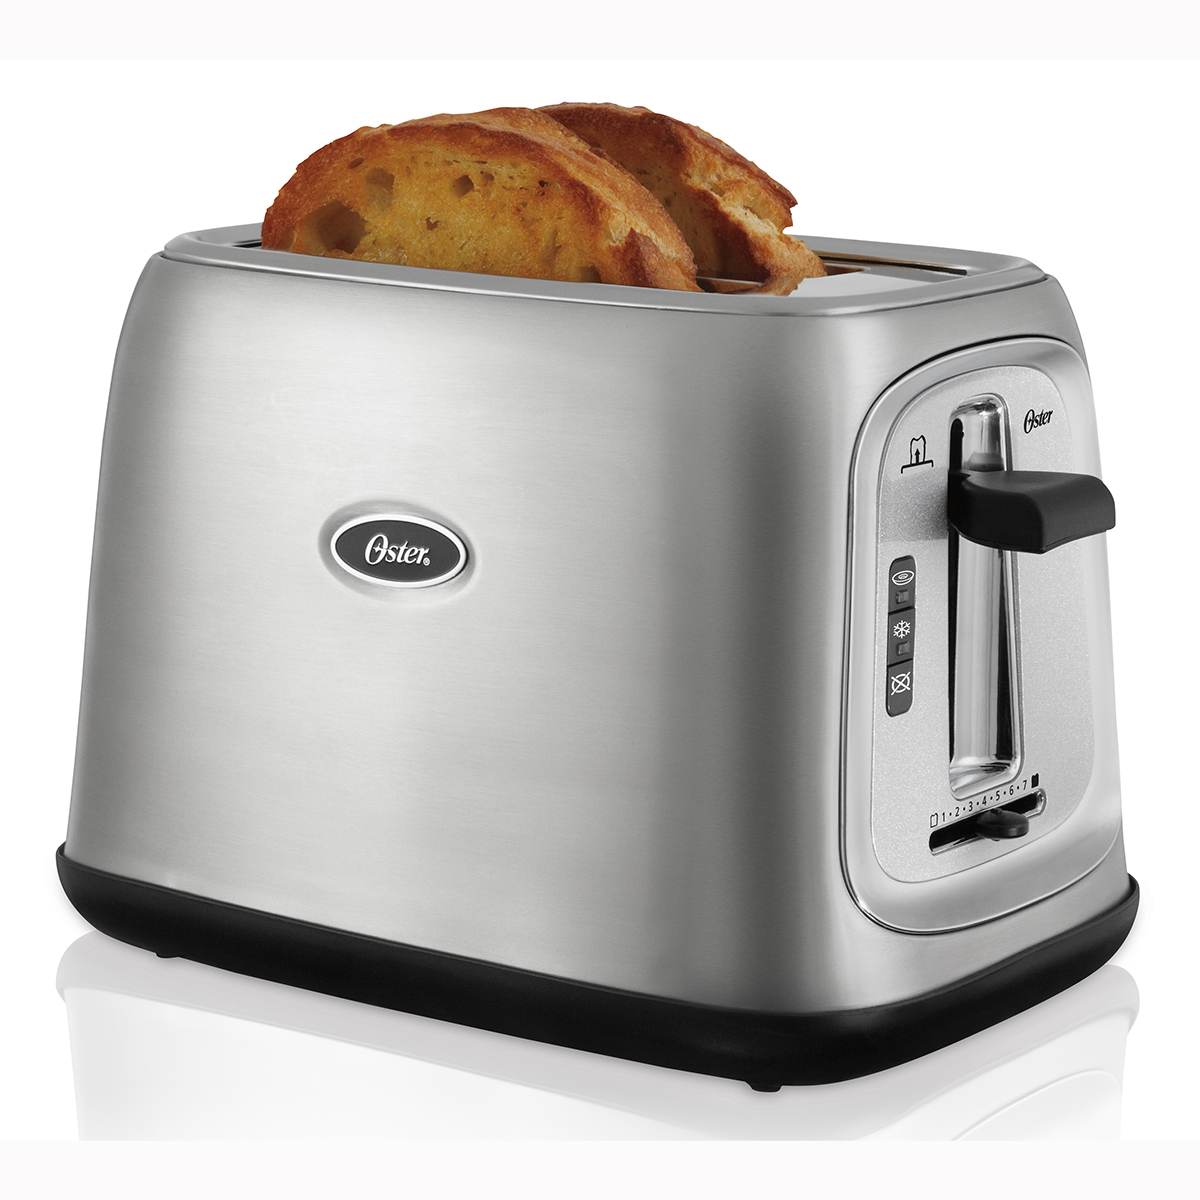 Oster 2 Slice Extra Wide Slot Toaster Stainless Steel